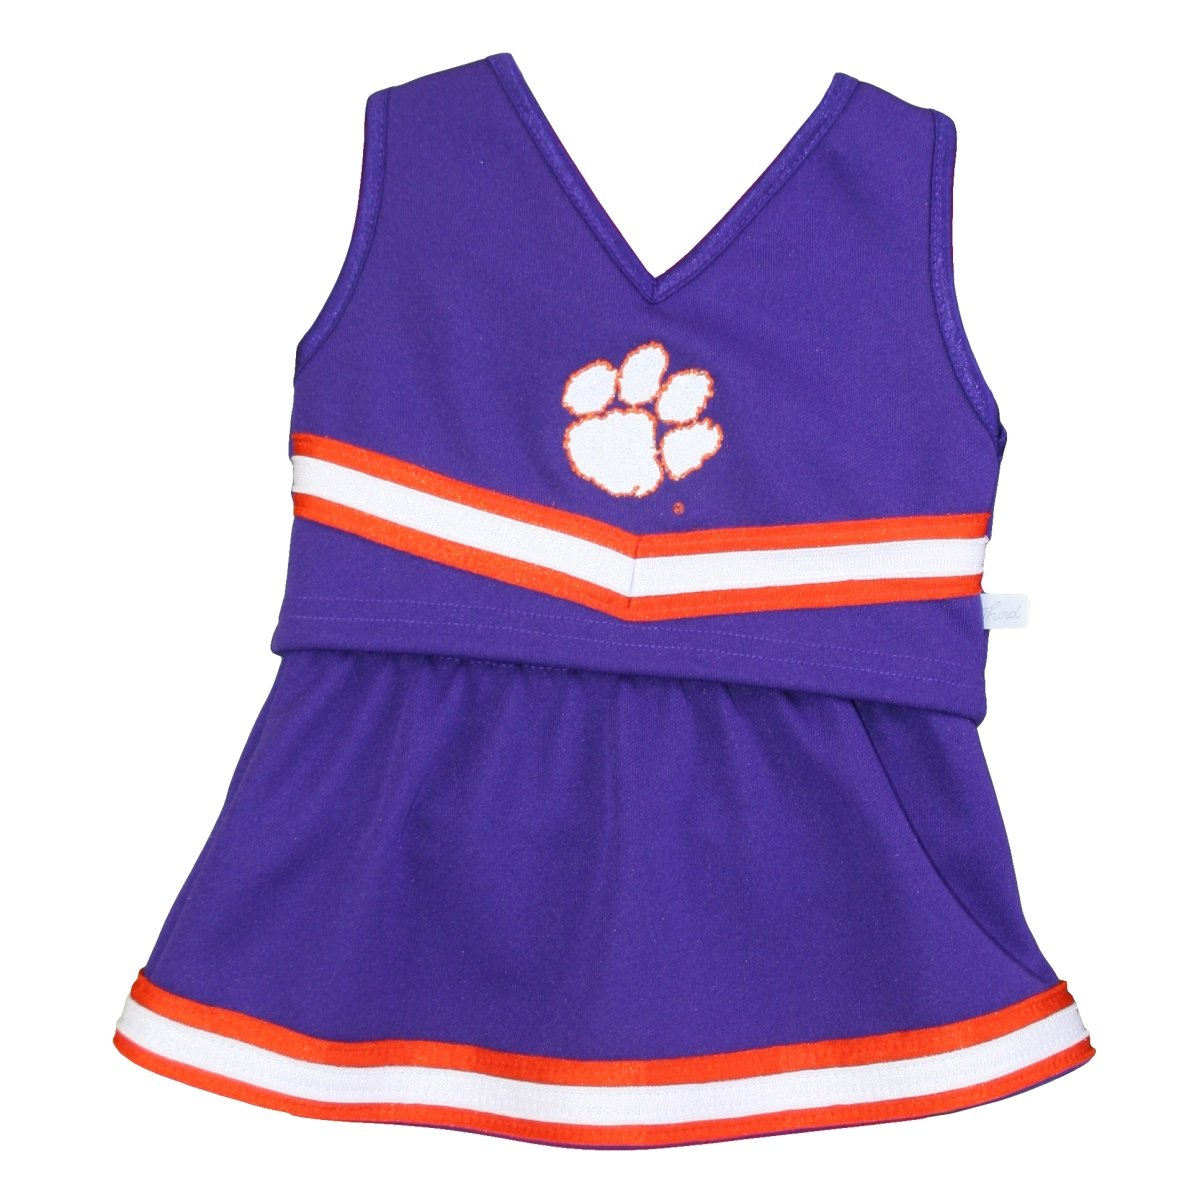 Clemson University 2 Piece Infant Cheerleading Outfit with Paw Print - Mr. Knickerbocker